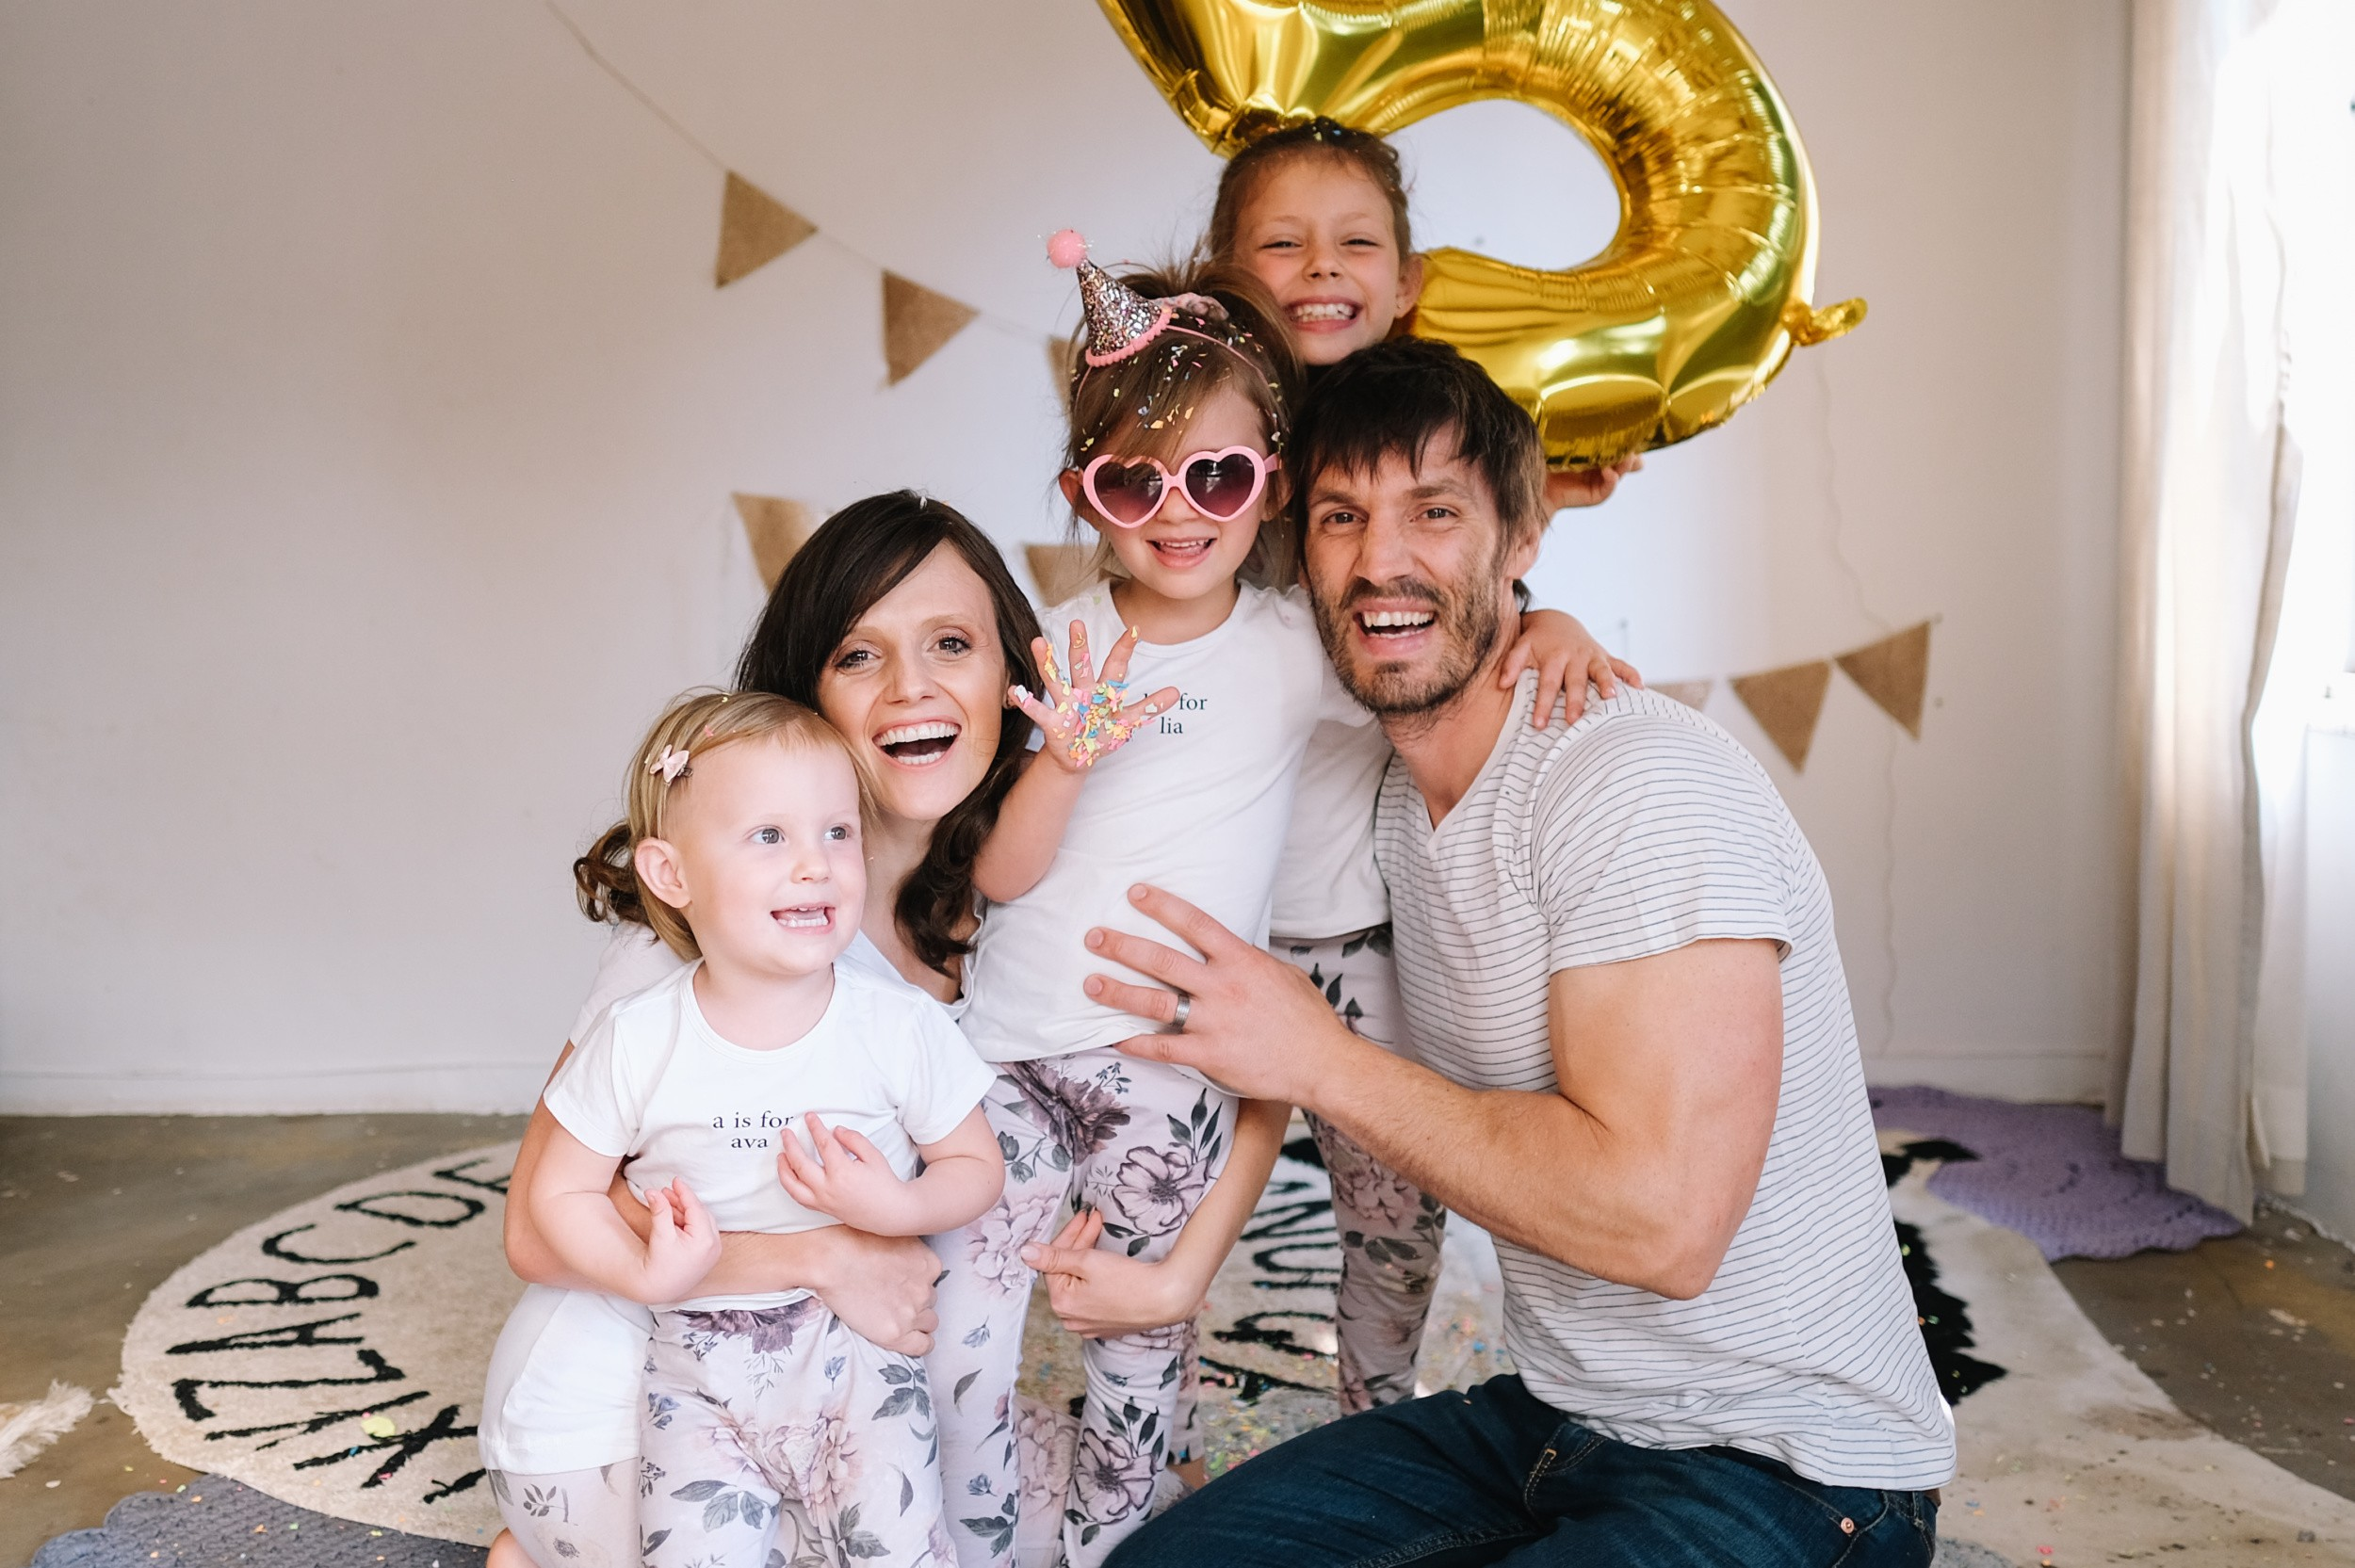 Party Ideas For A 5th Birthday